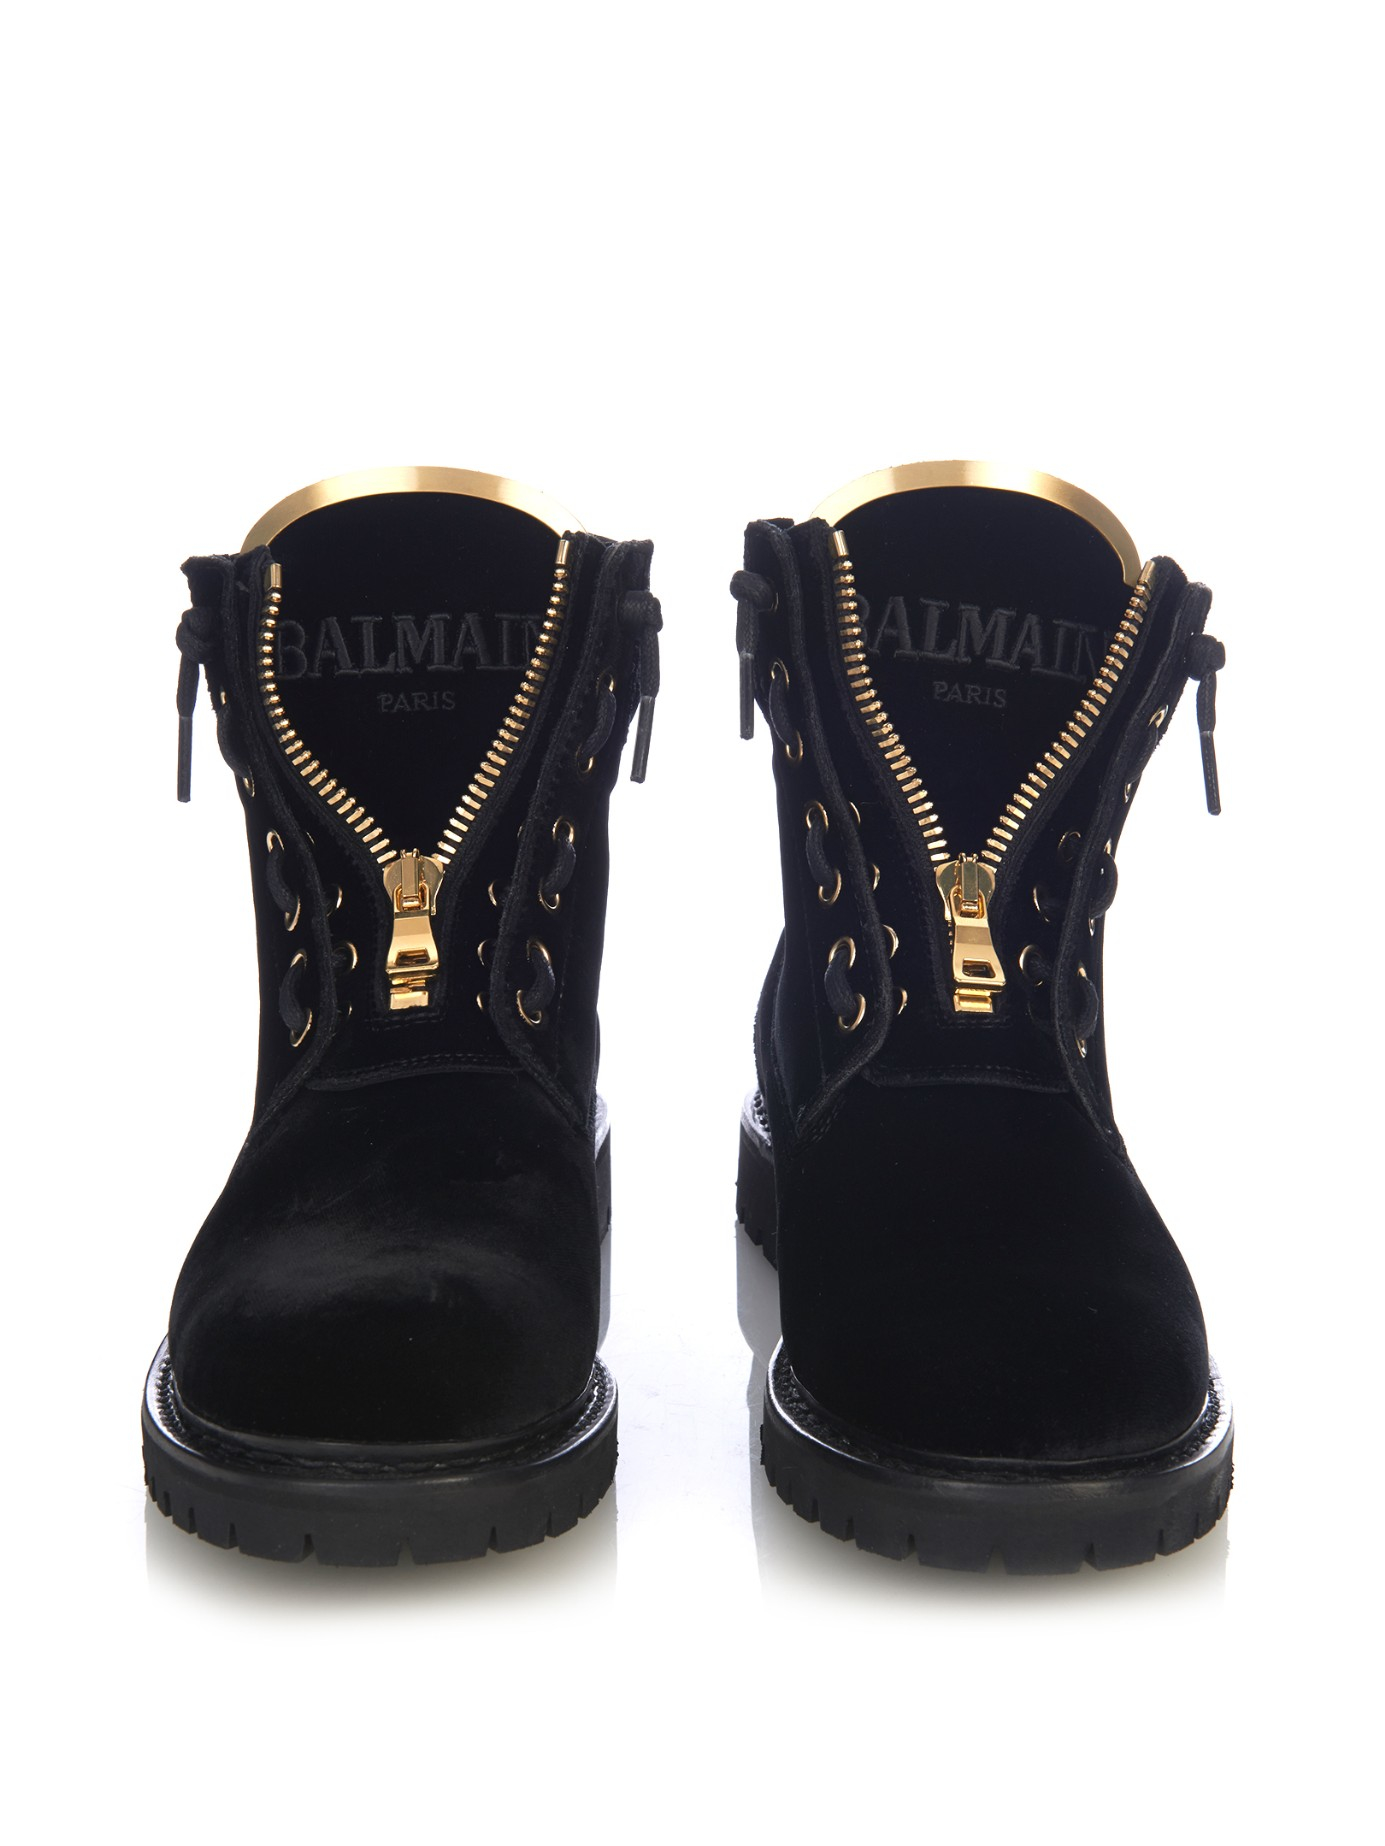 Cool Most Winter Boots On The Market Do A Lousy Job Of Preventing  Climbing 10 Degrees, Dakota Mens And Womens Safety Boots With Green Diamond Soles, Sperry Womens Powder Valley Arctic Grip Vibram,